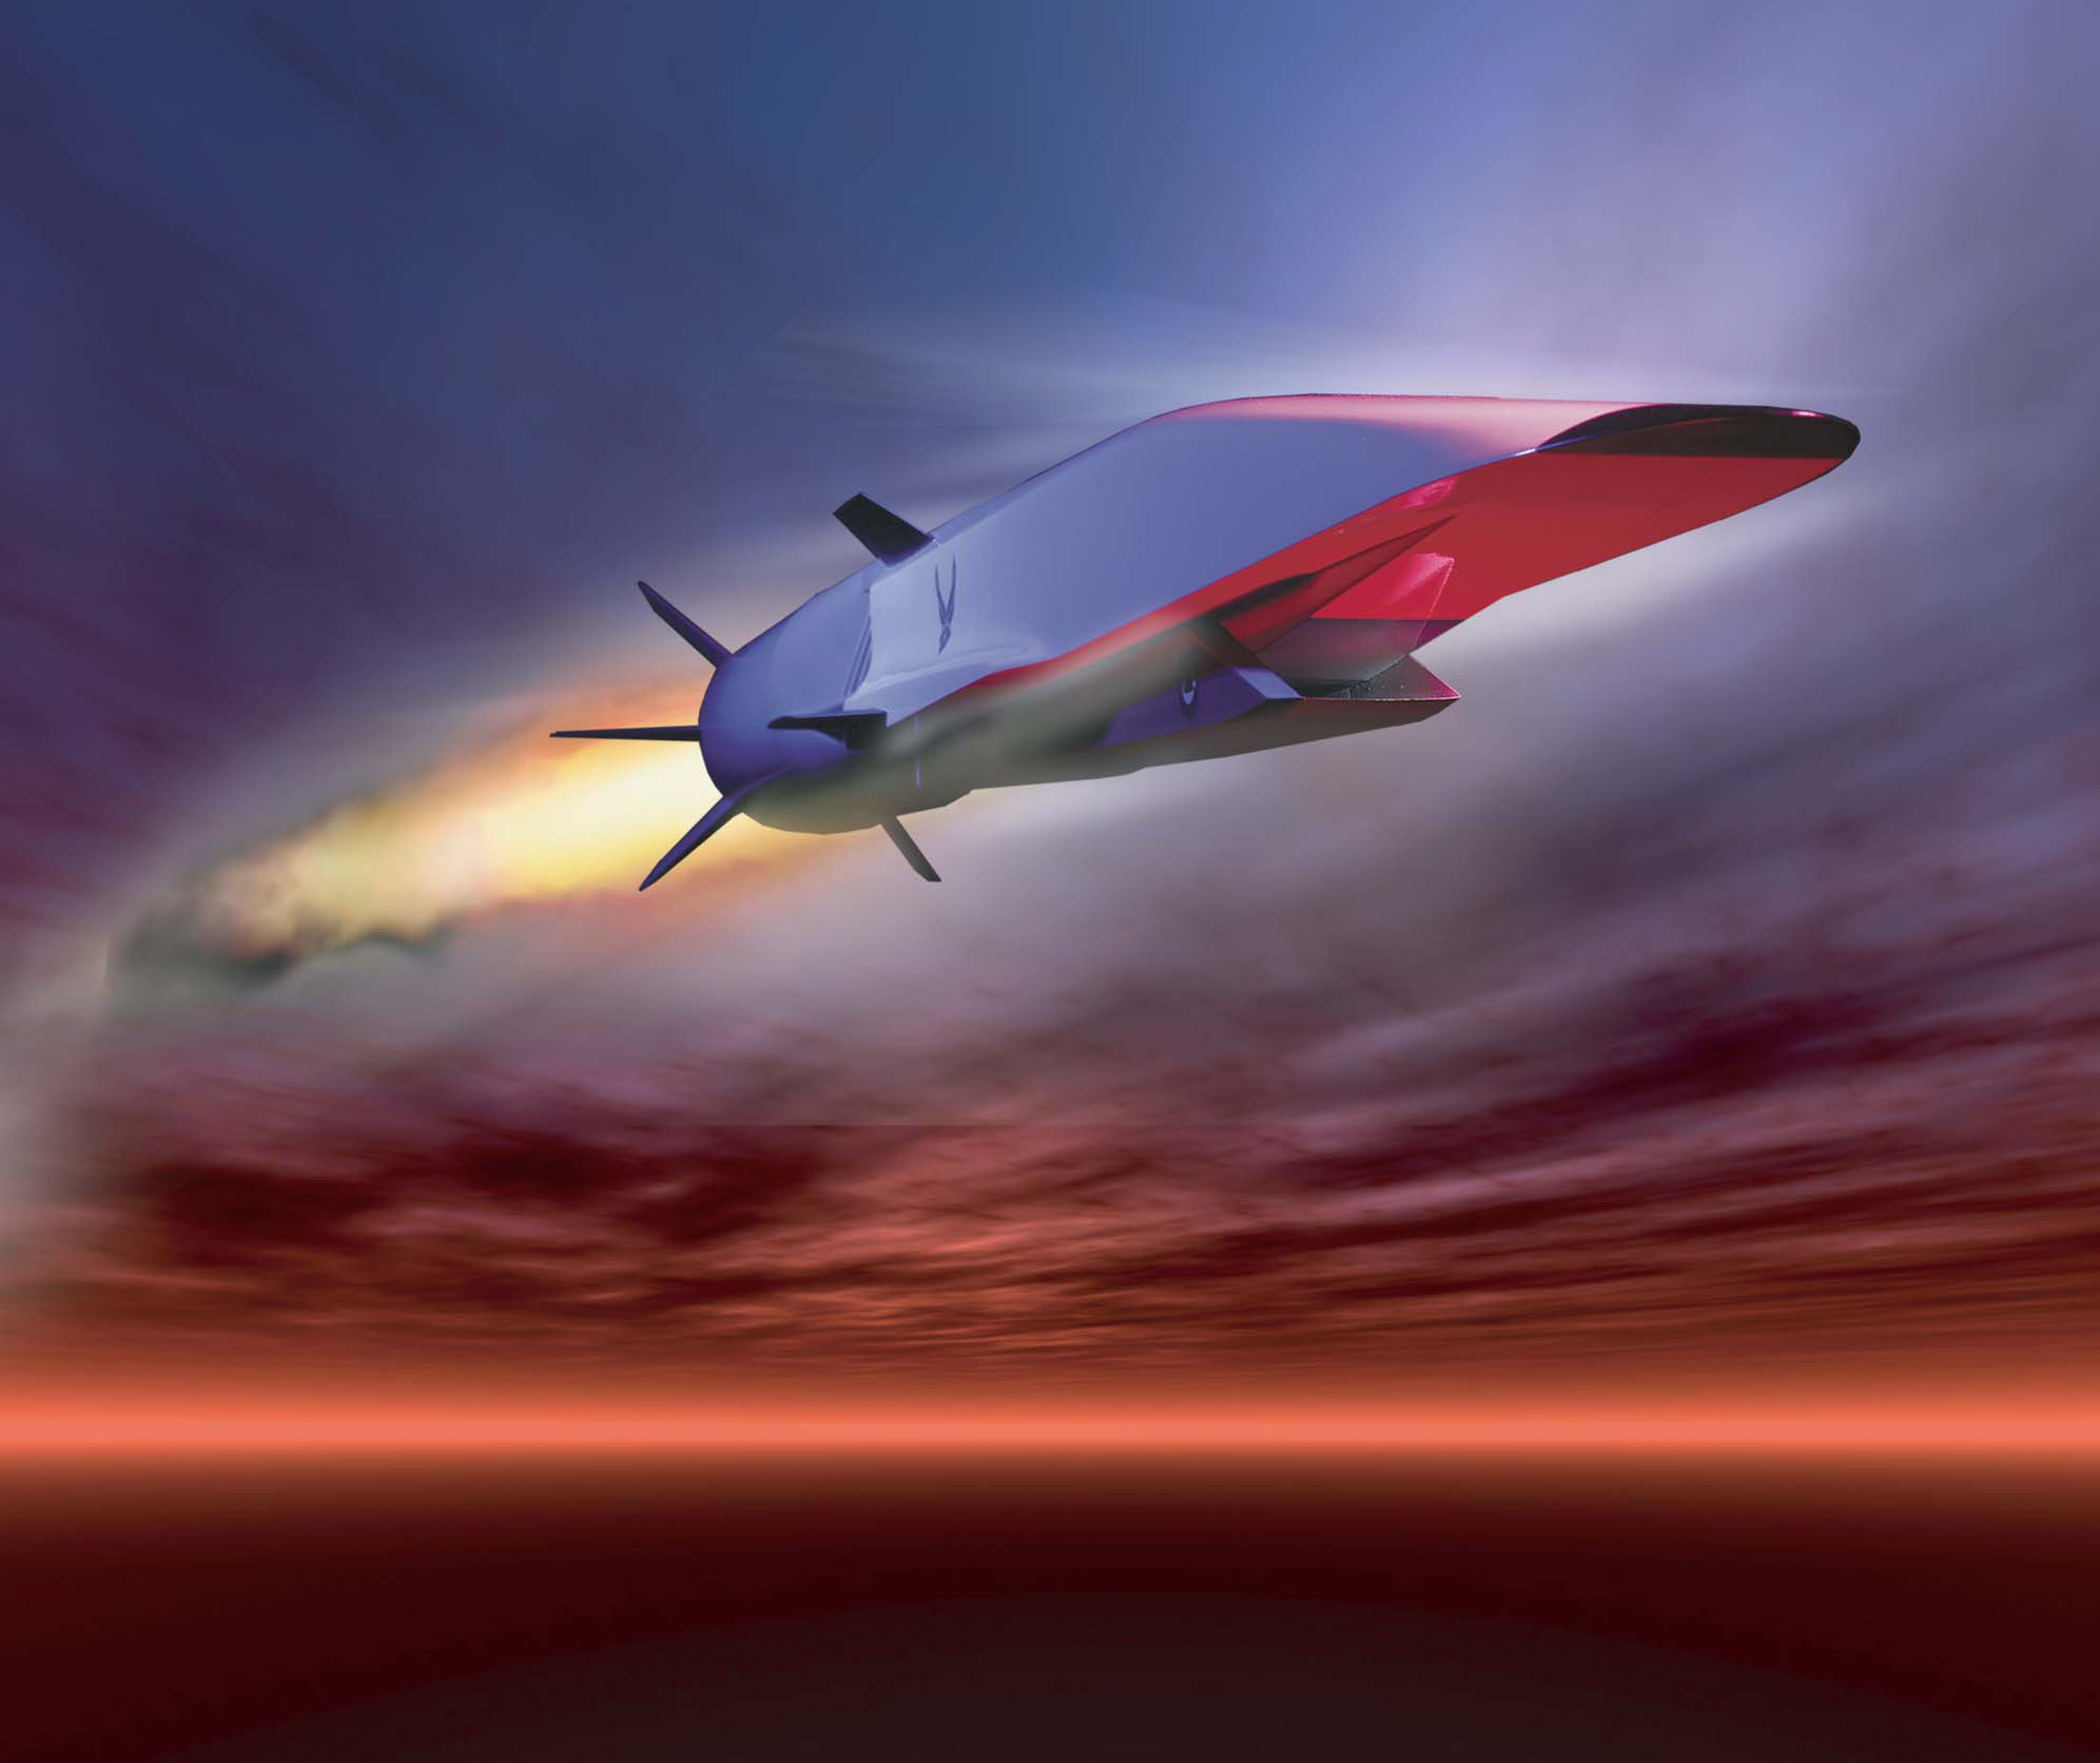 As Putin touts hypersonic weapons, America prepares its own arsenal. Will it be in time?